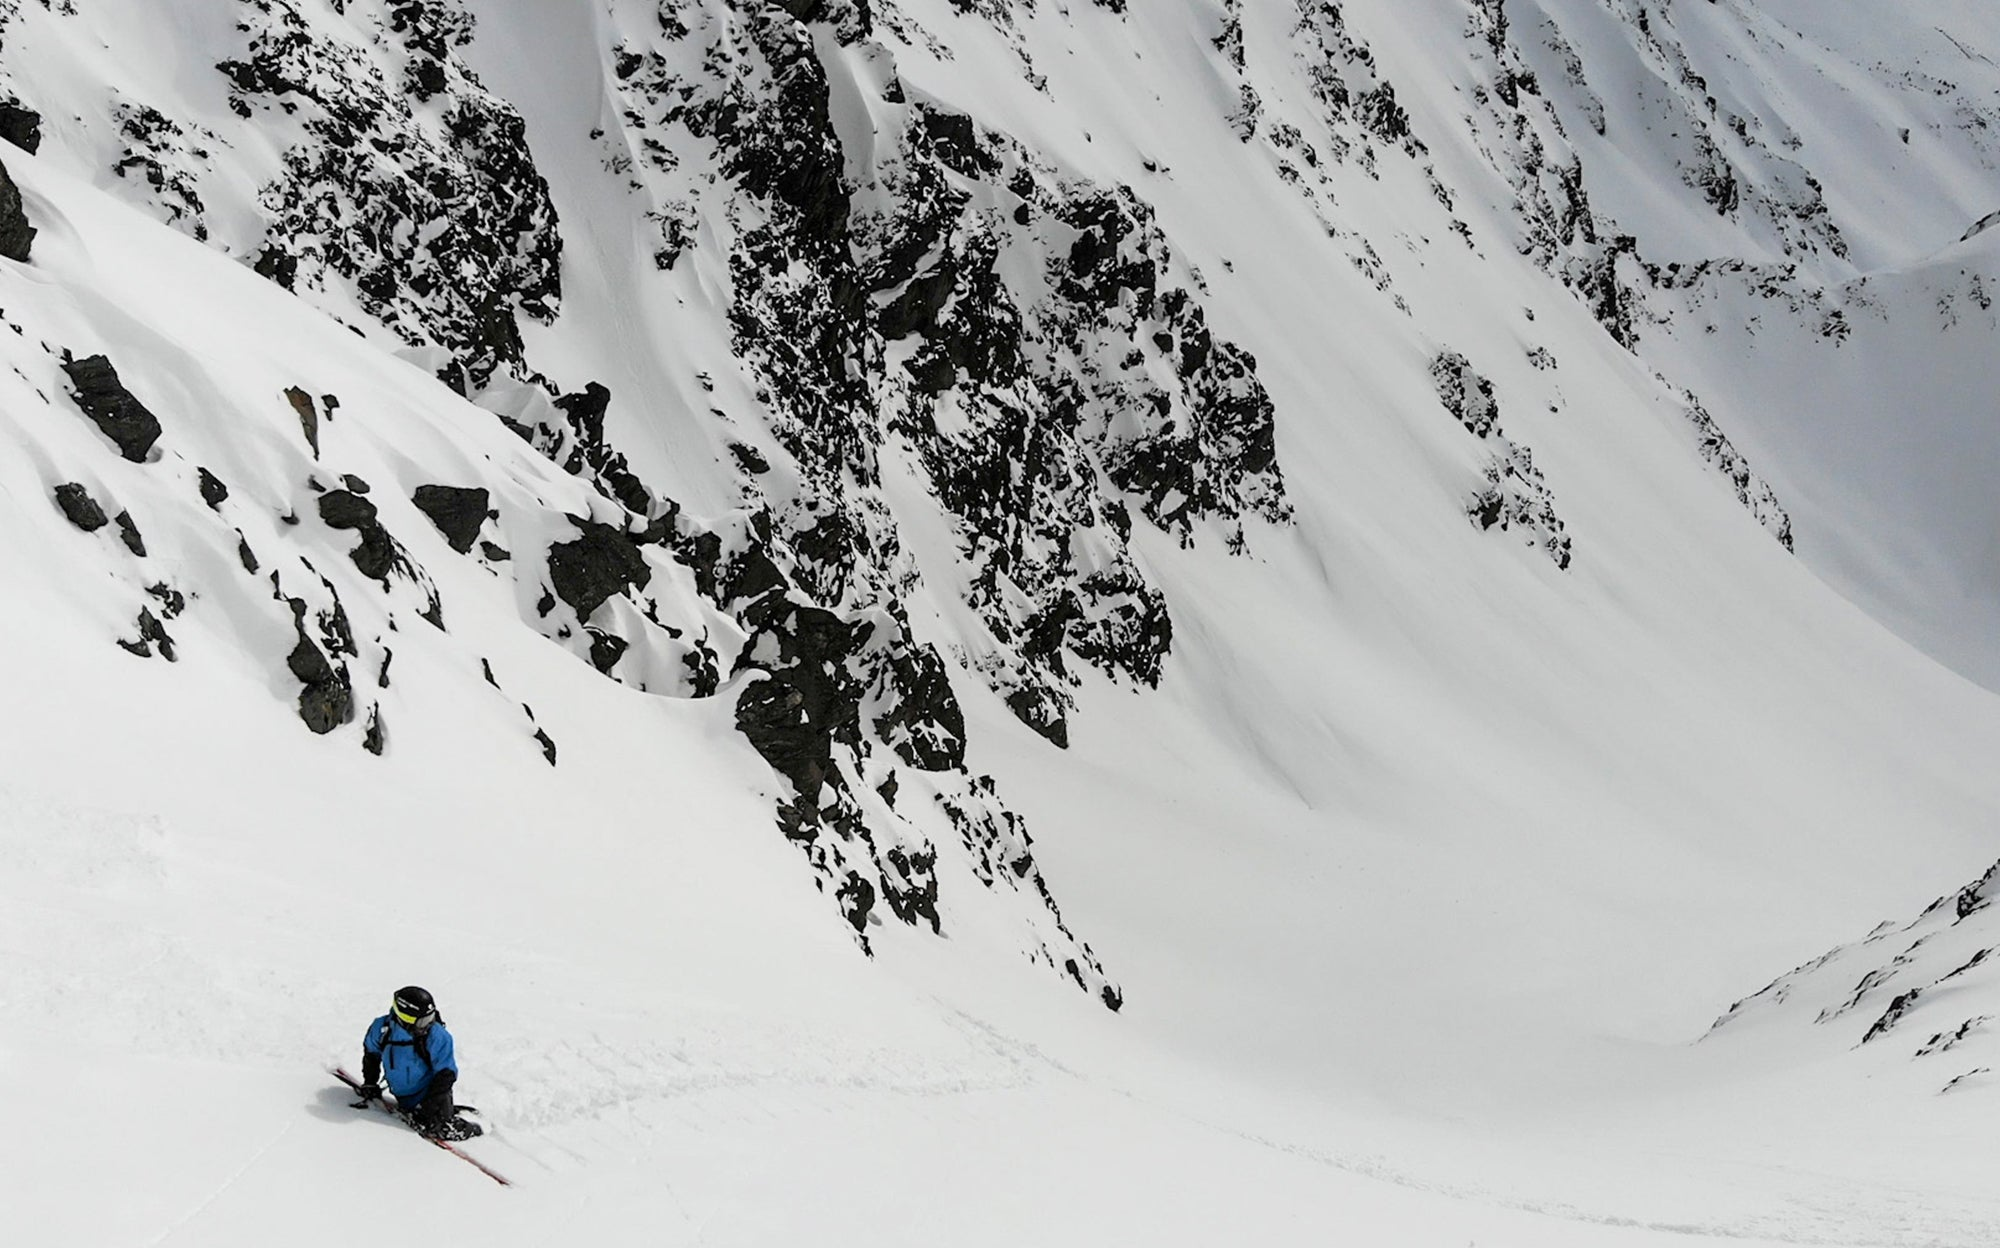 Xaver Kroll backcountry skiing in the TOBE Novo Mono Suit in Austria